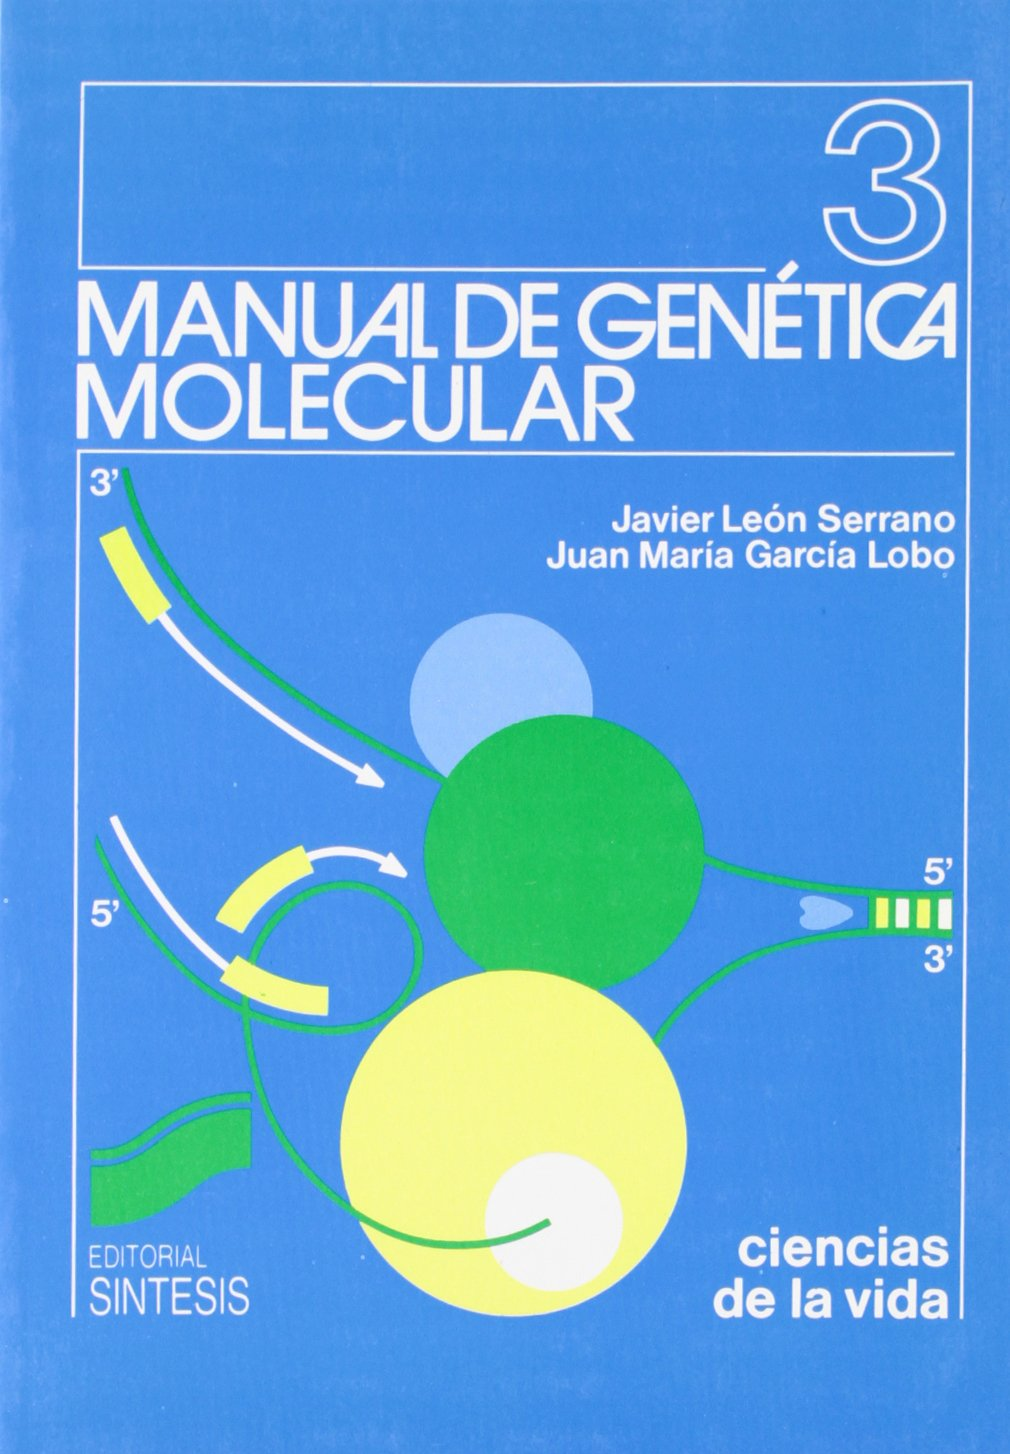 Manual de Genetica Molecular (Spanish Edition) pdf epub